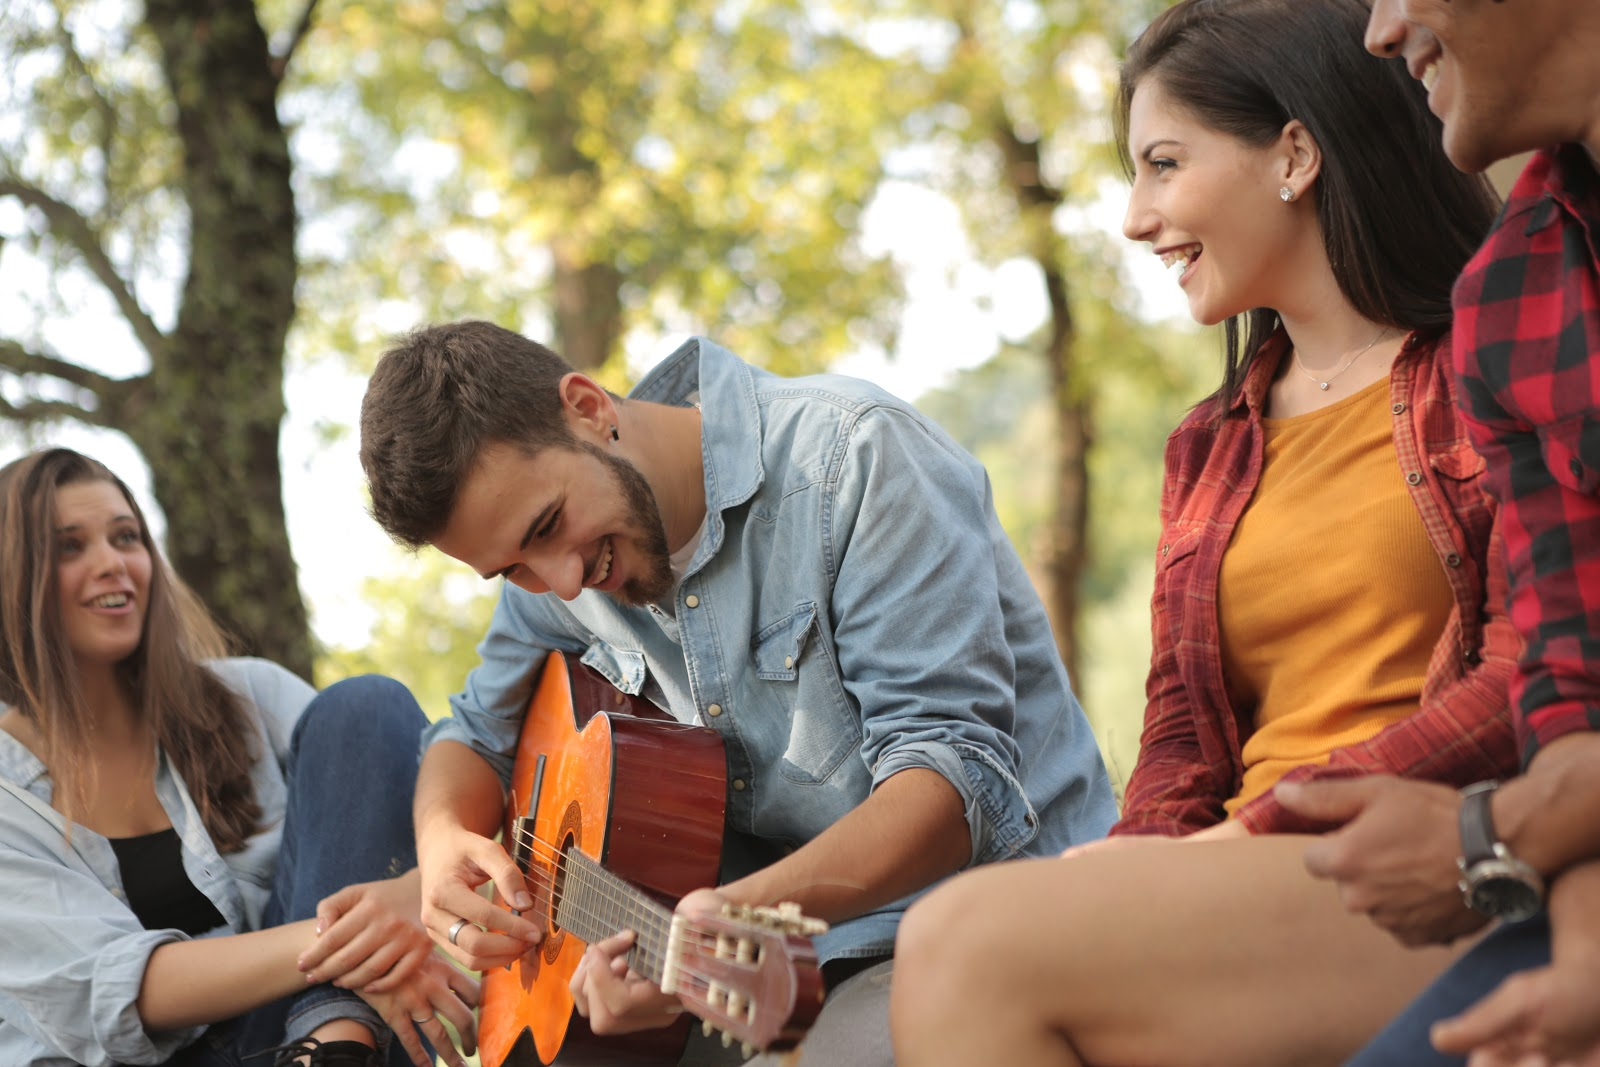 guy playing guitar with two women on his side